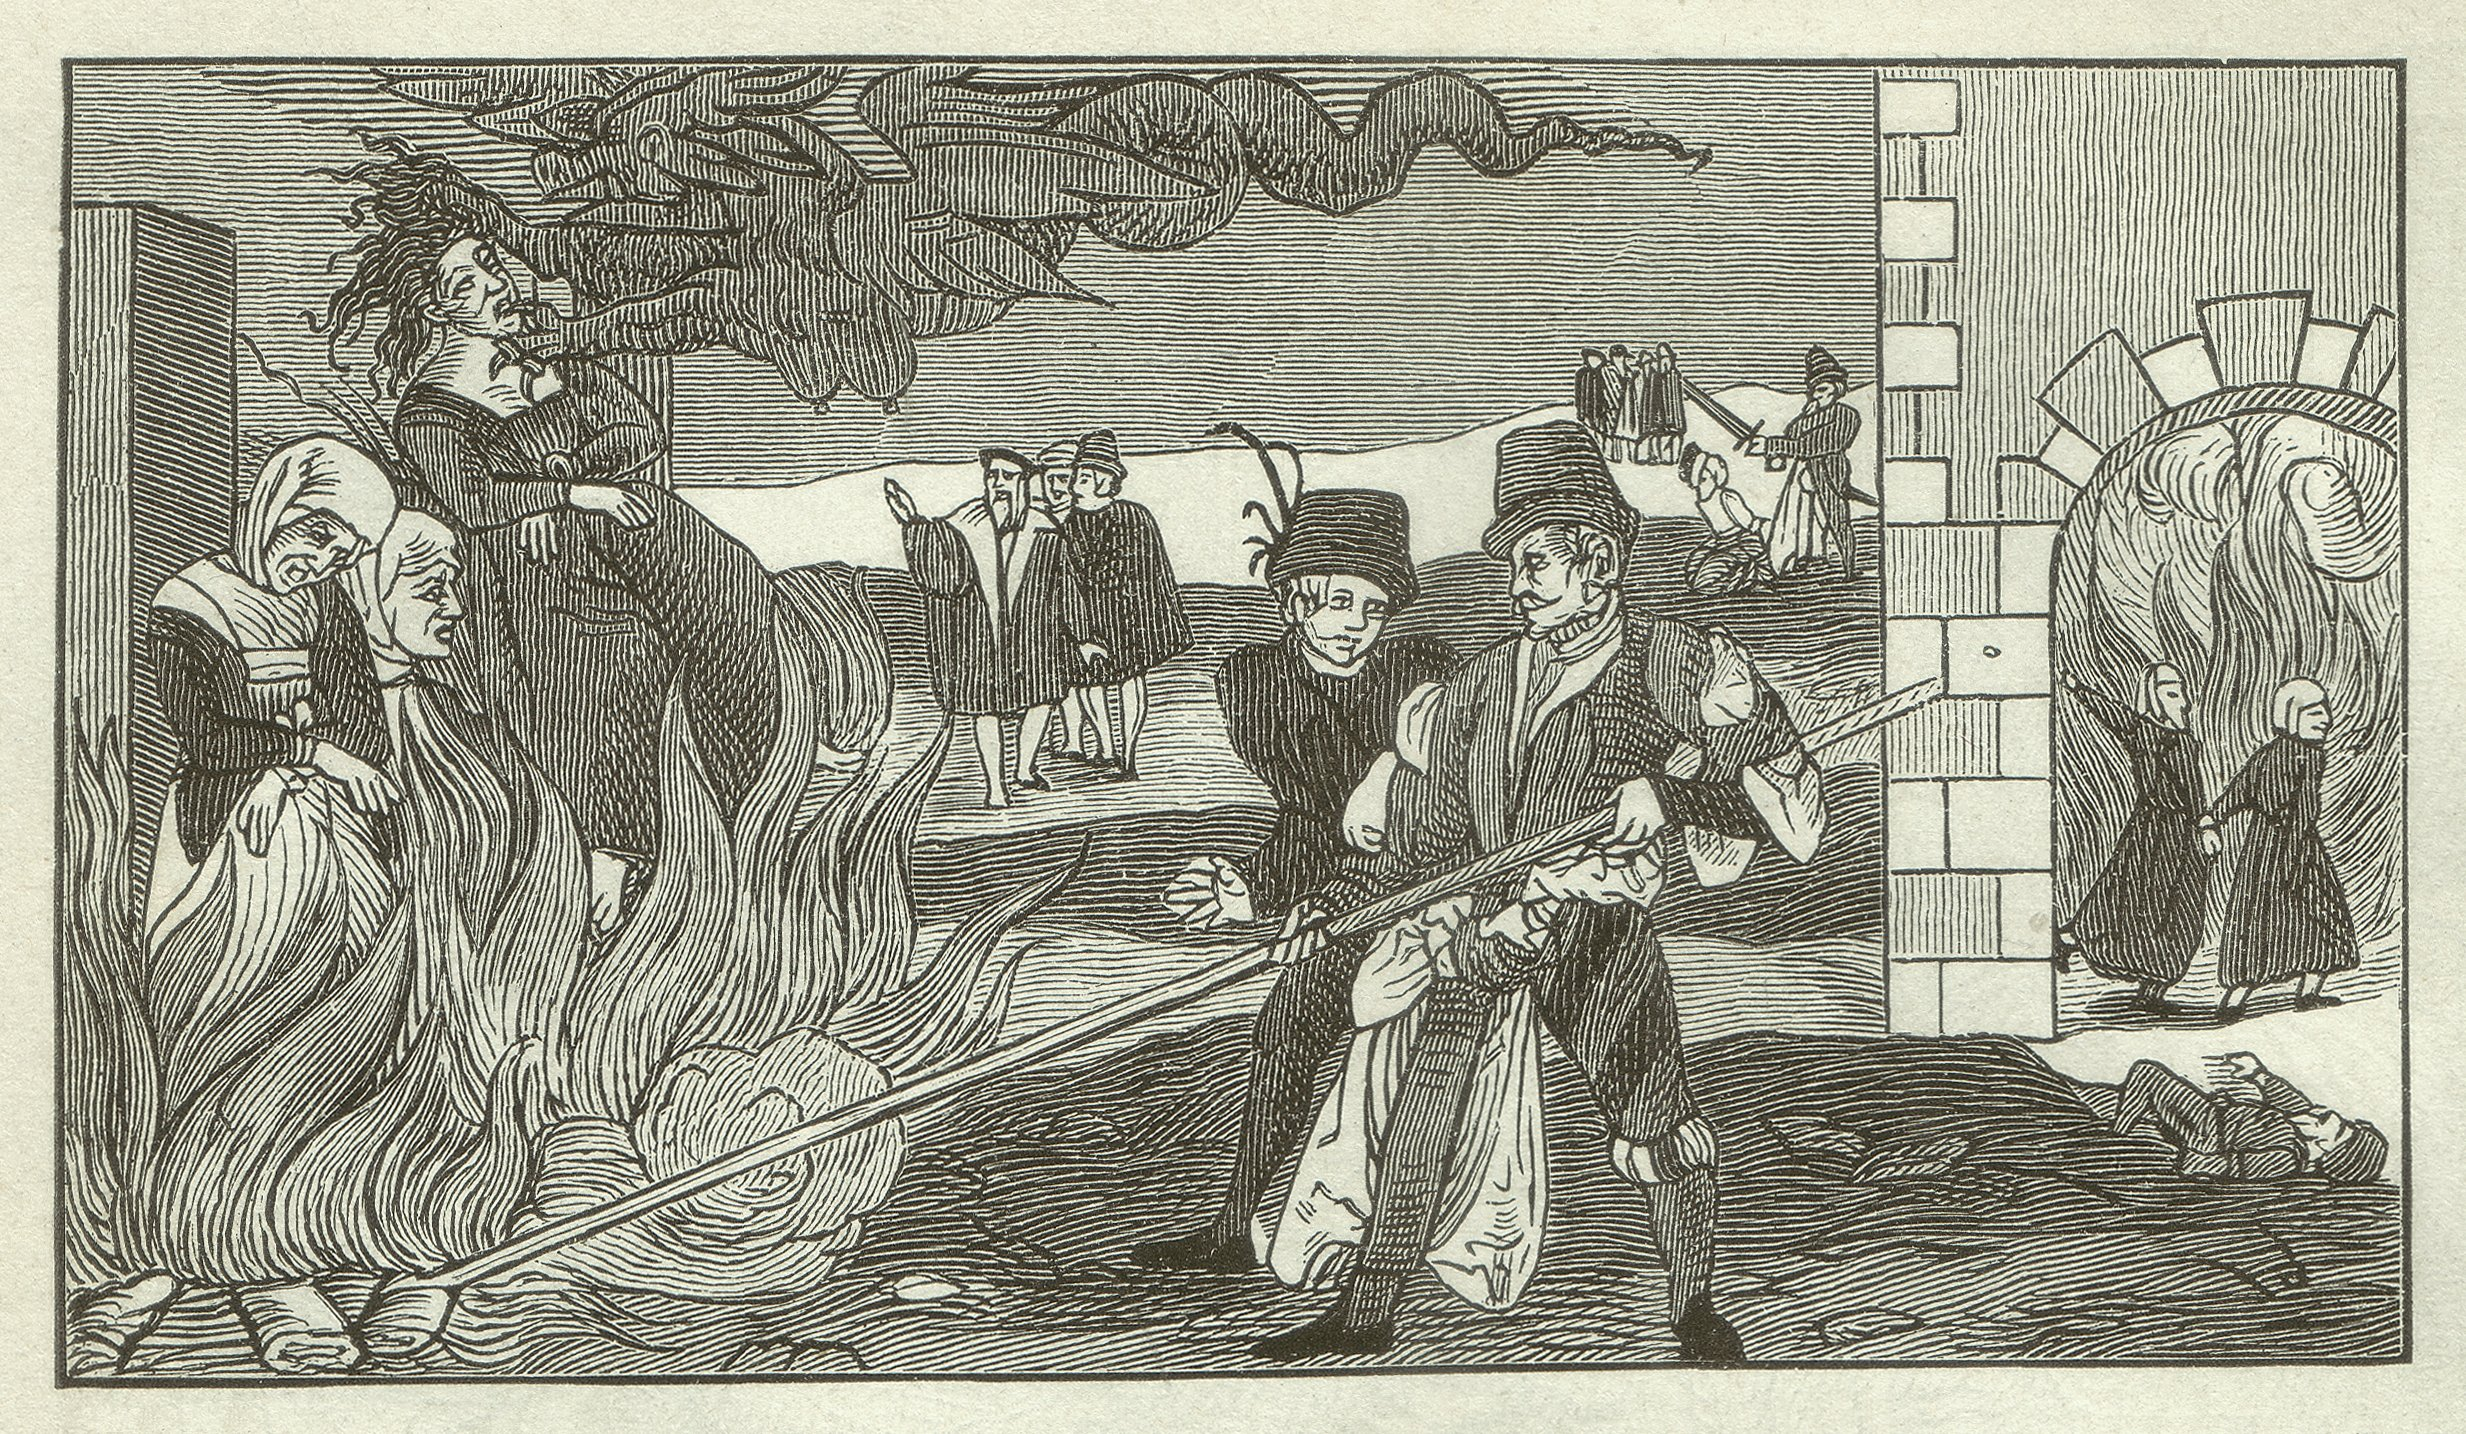 Witch-burning in the county Reinstein of Regenstein, Saxony-Anhalt state in Germany in 1555. Woodcut engraving after leaflet in the Collections of the Germanisches Nationalmusem in Nuremberg, published in 1881. (iStock Photo)